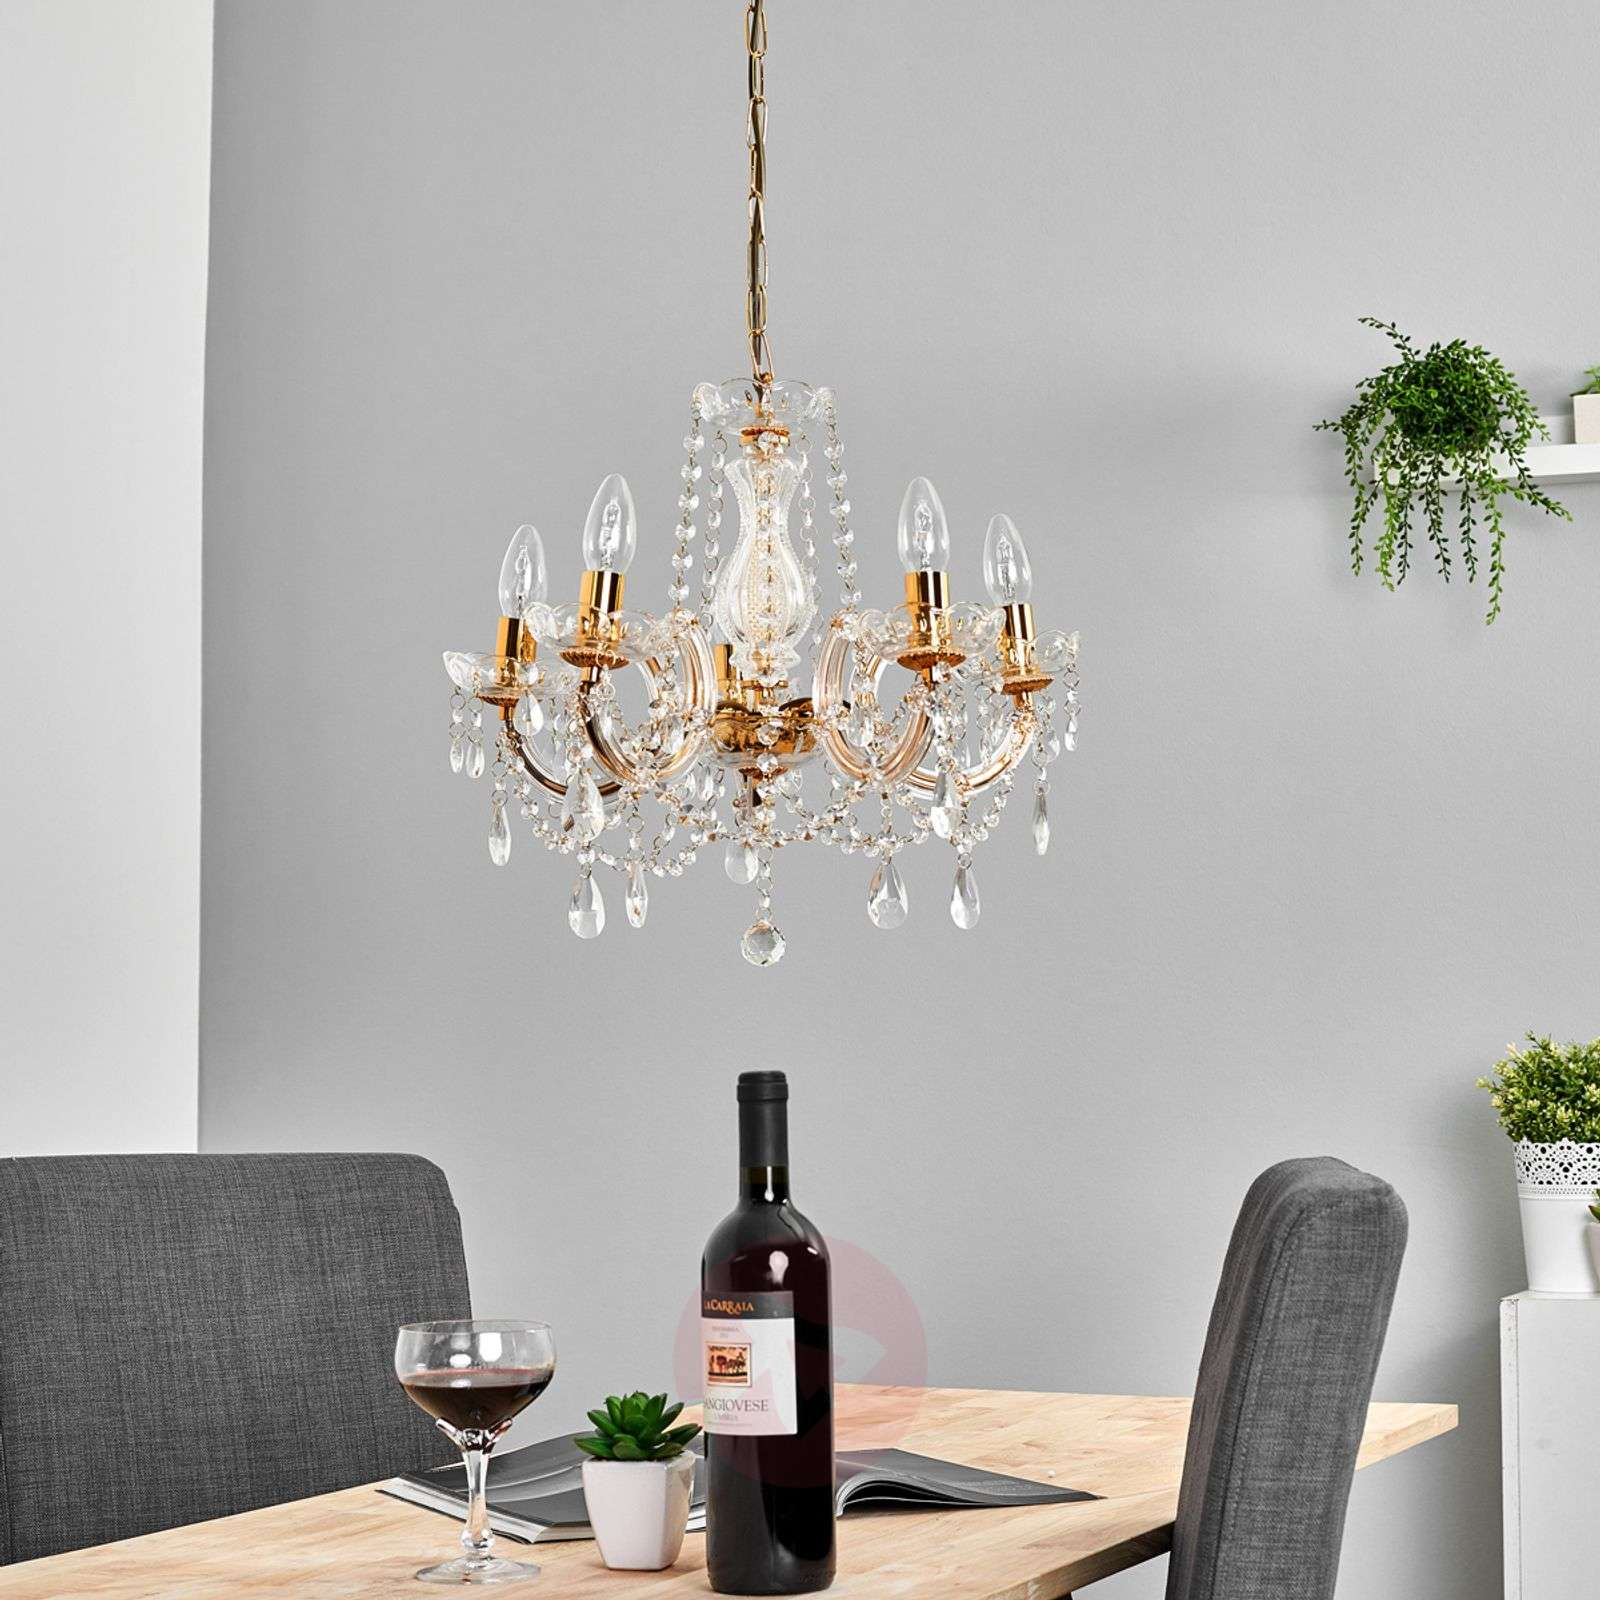 Beautiful Marie Therese chandelier, 5-fl.-8570160-04